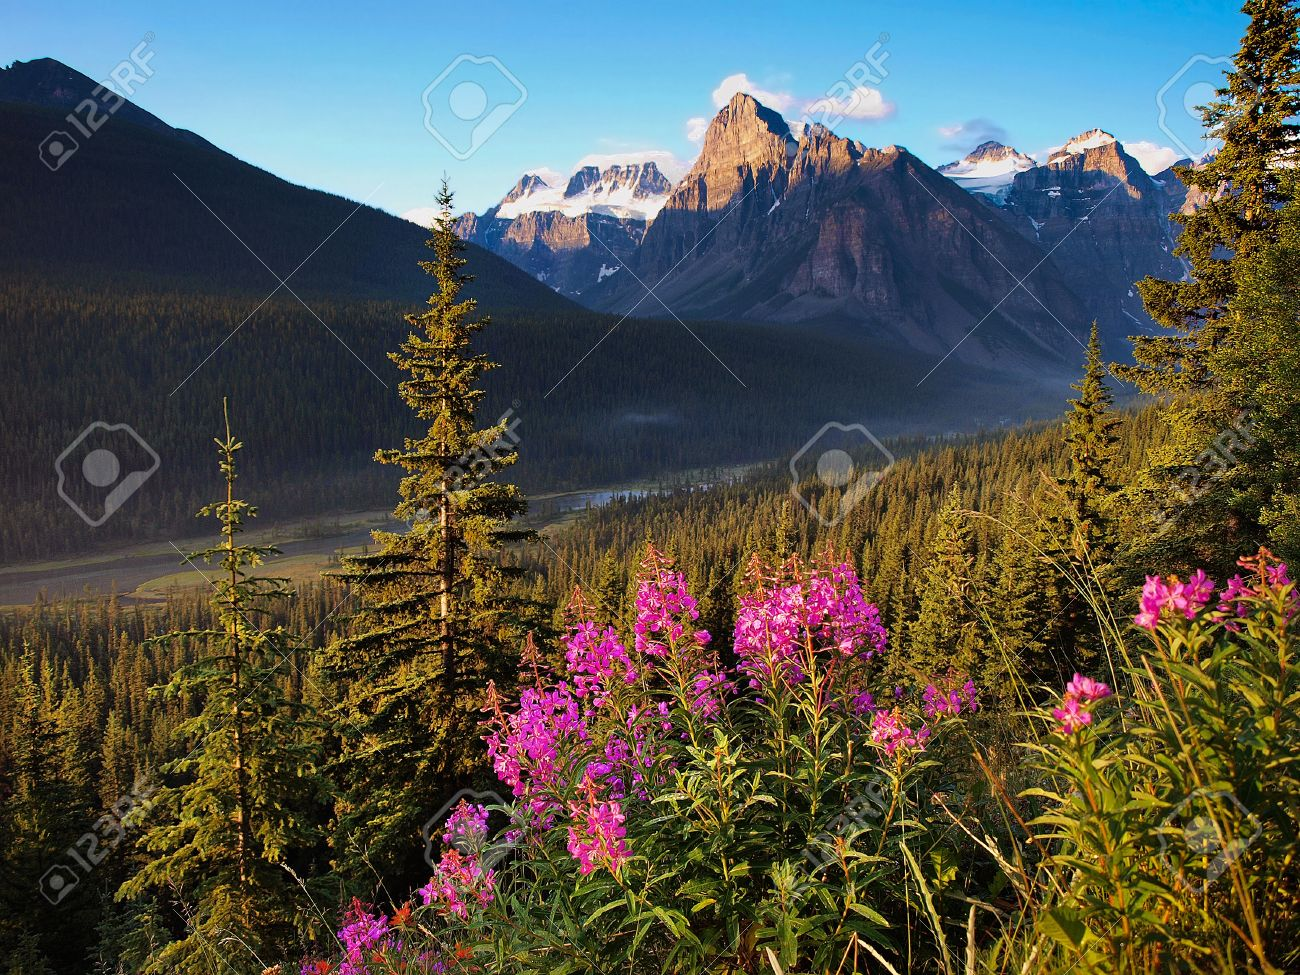 Beautiful landscape with Rocky Mountains at sunset in Banff National Park, Alberta, Canada Stock Photo - 17330586